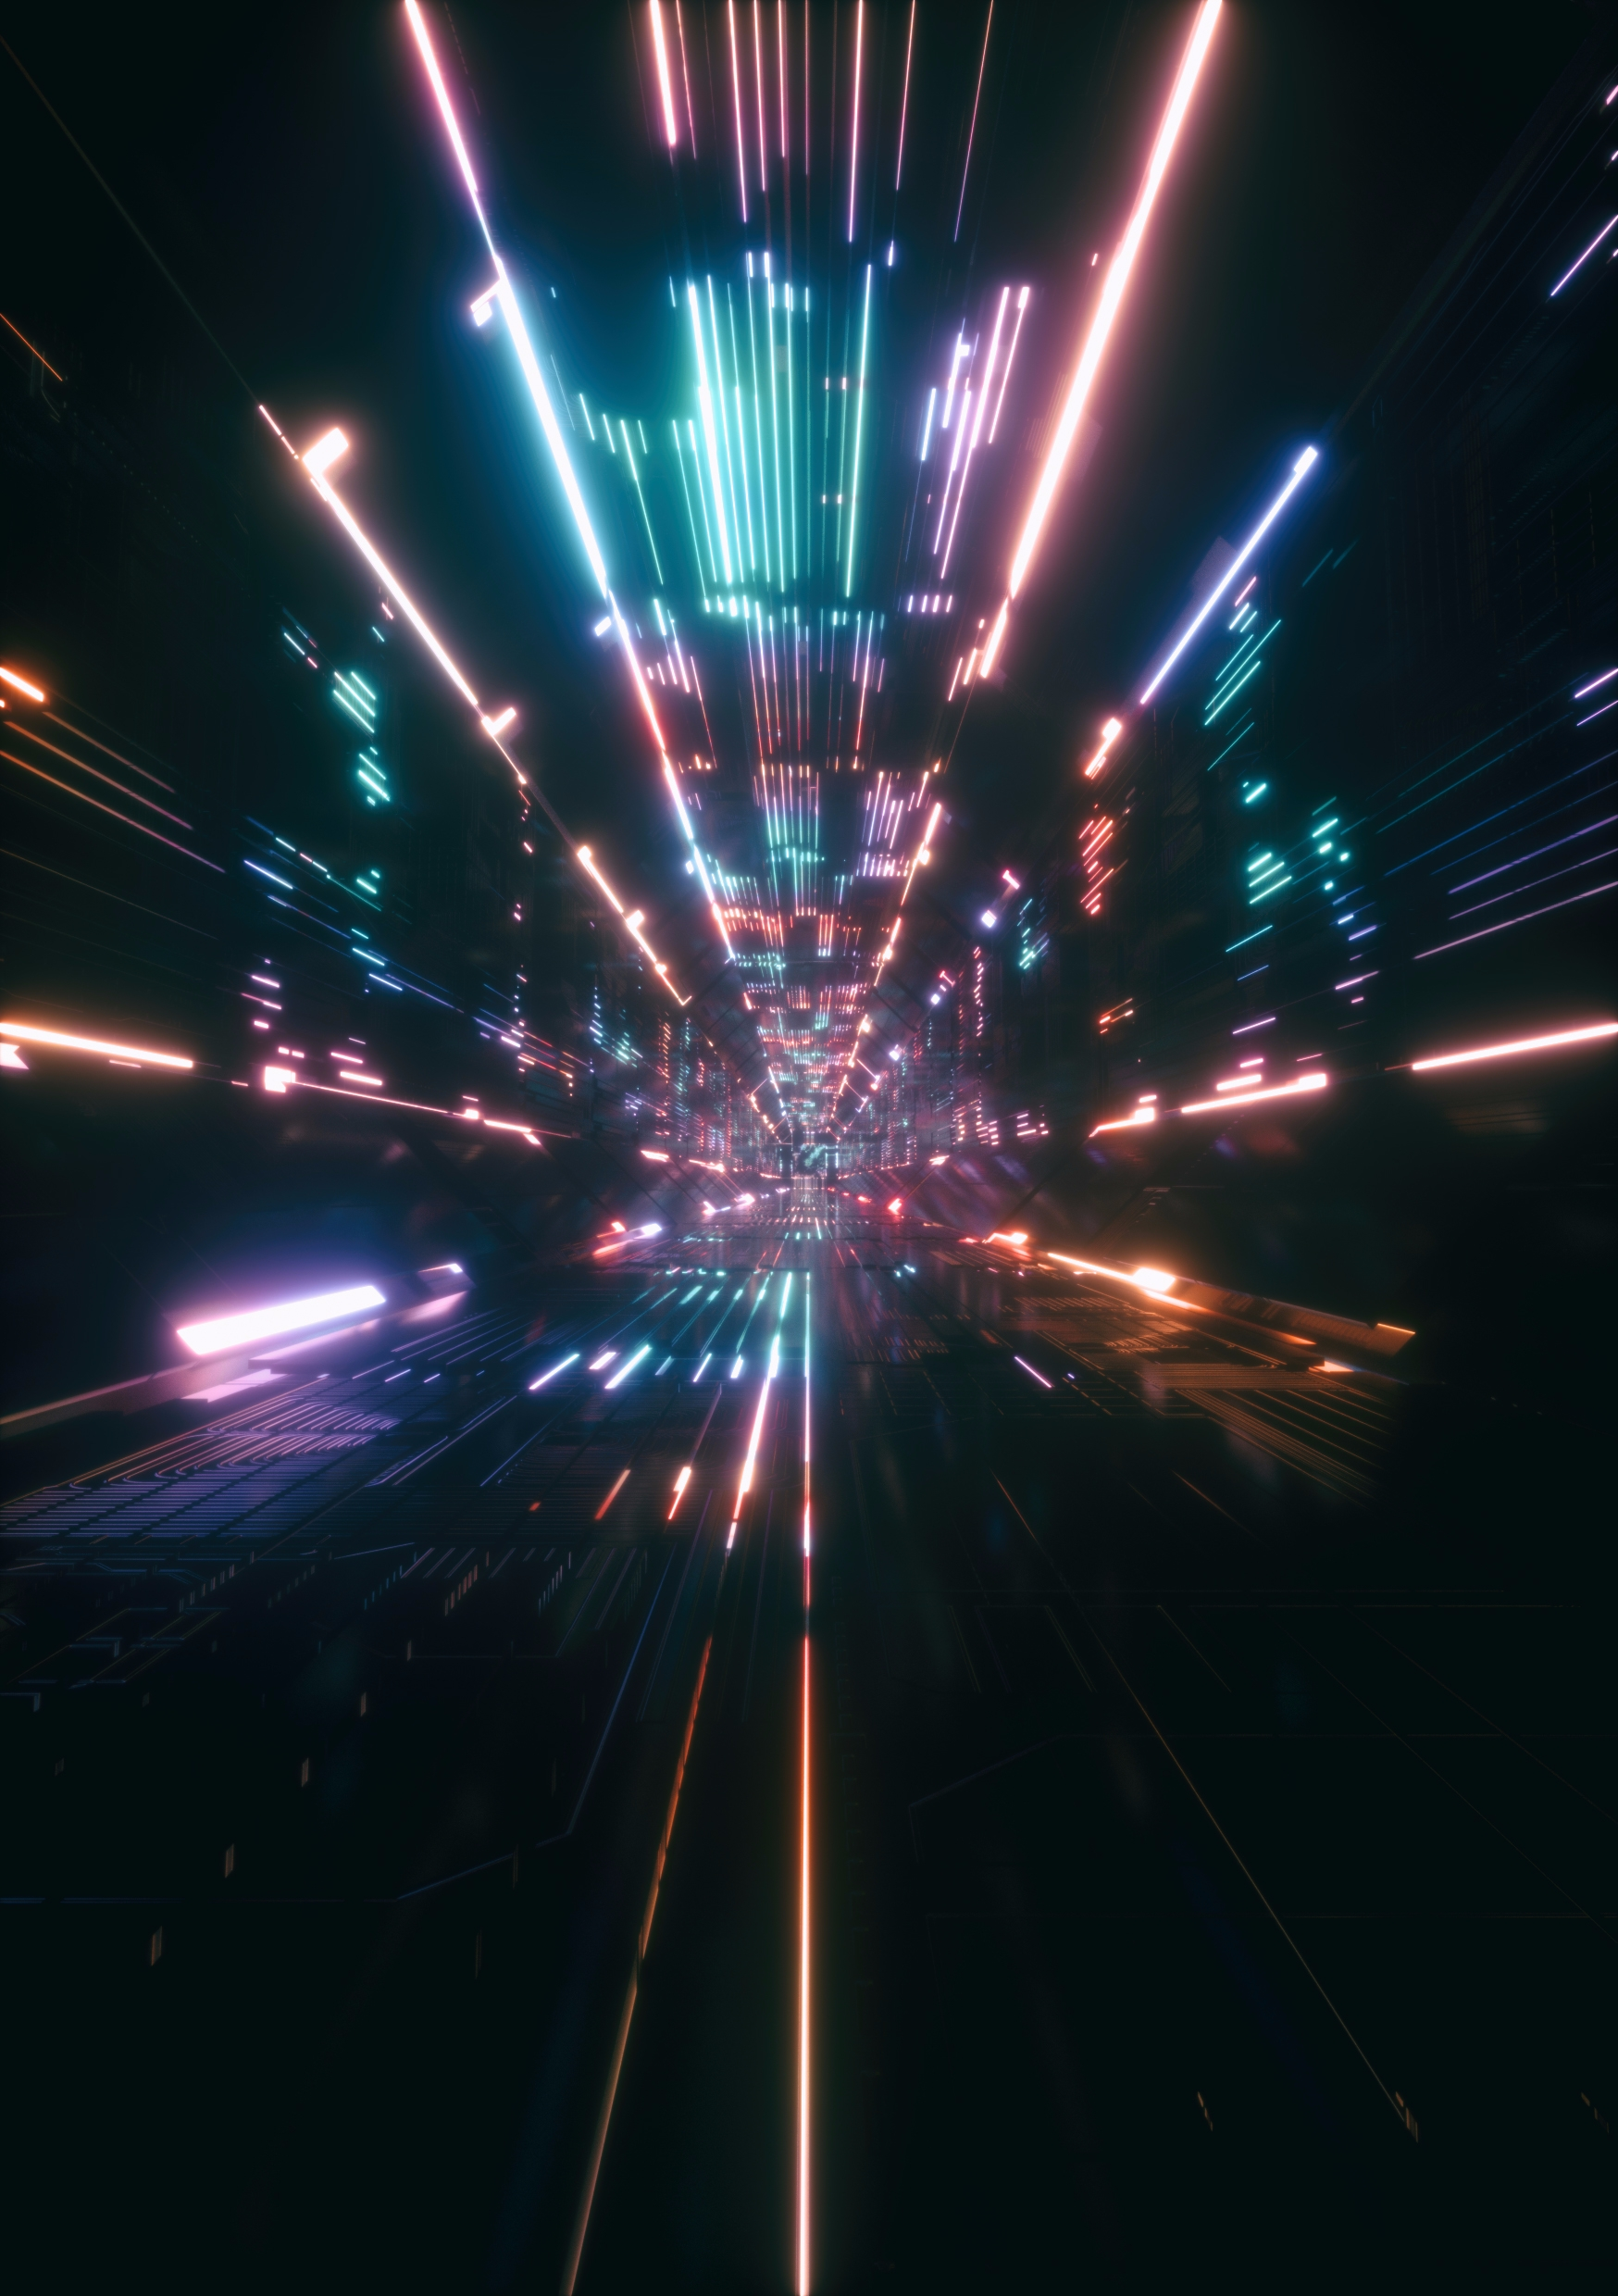 cross - cinema4d, c4d, art, design - fvckrender | ello